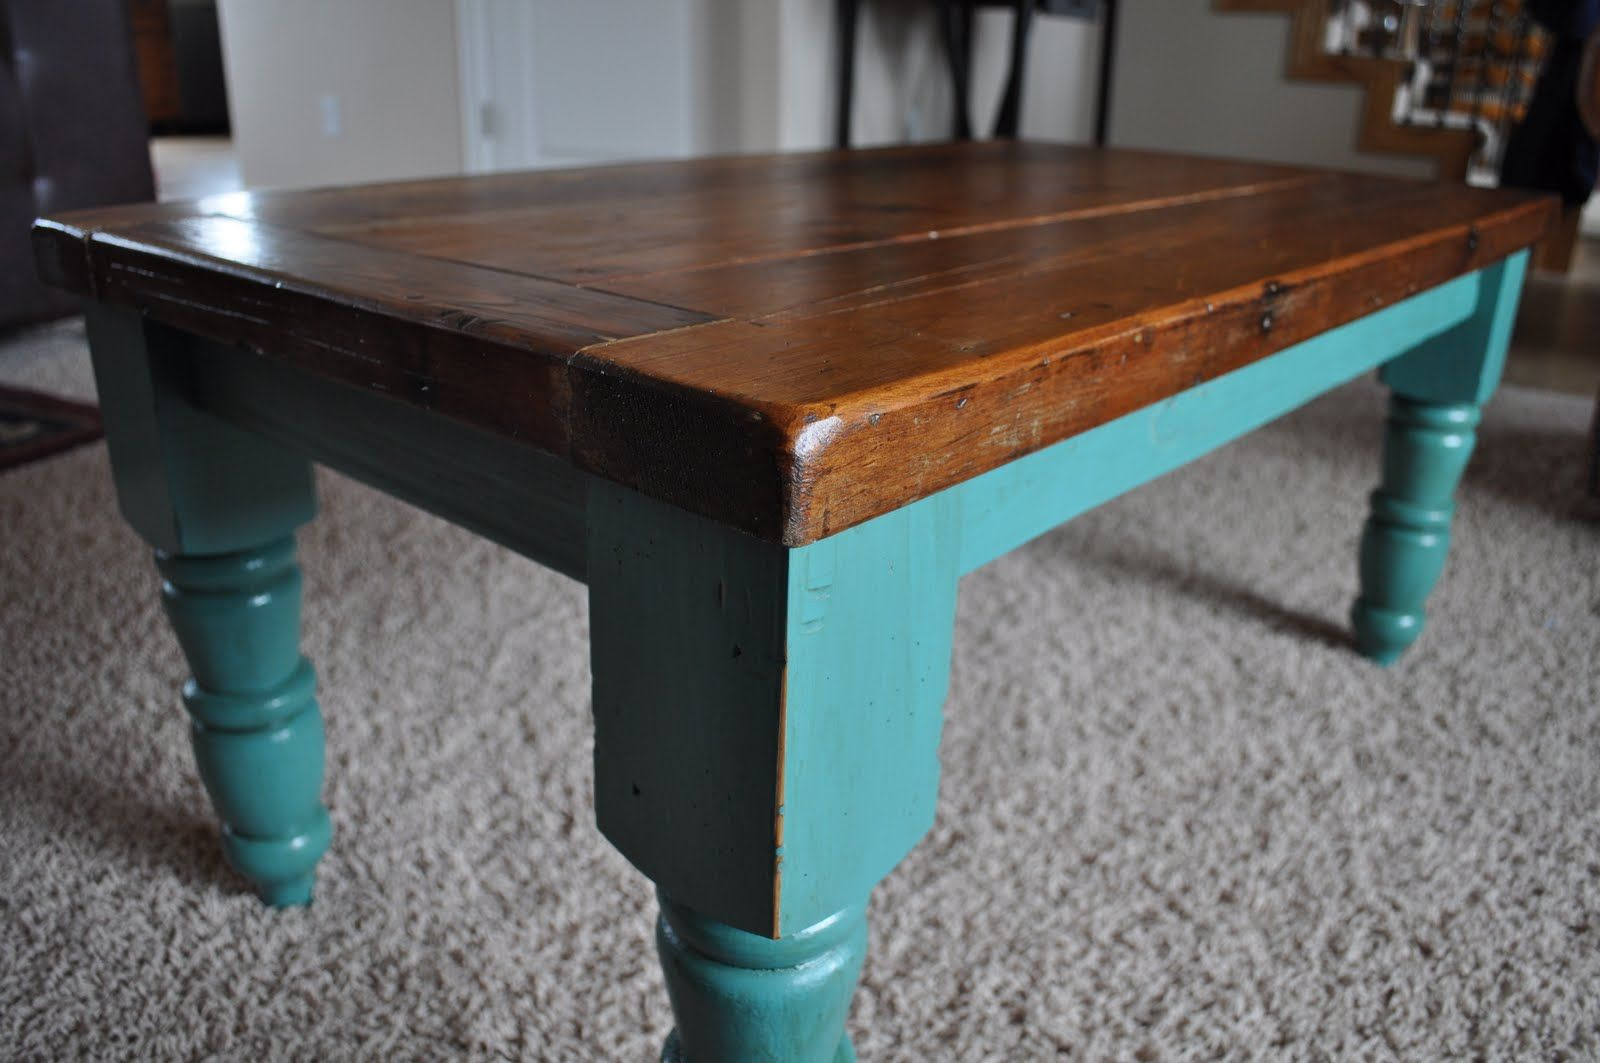 I M Seriously Thinking Of Painting My Studio Room Alder Farmhouse Table S Legs Teal Like In This Photo From Plain Jane Painted Fur Teal Coffee Tables Coffee Table Upcycle Painted Furniture [ 1063 x 1600 Pixel ]